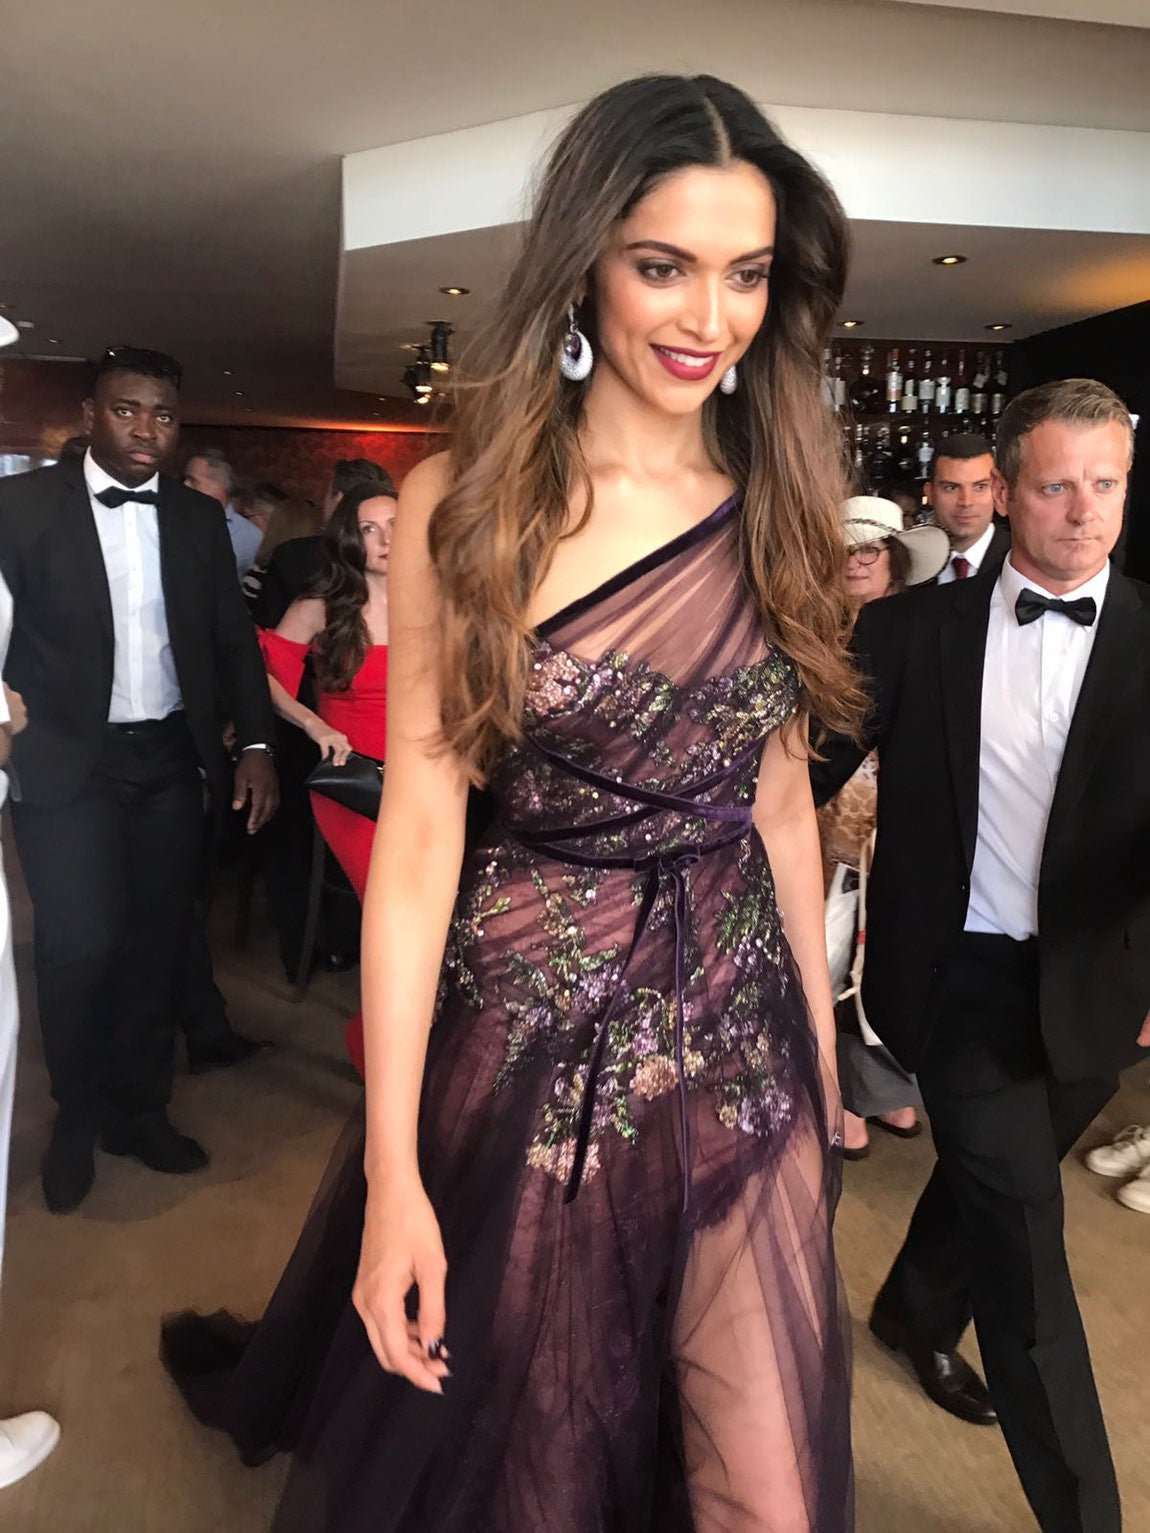 Deepika Padukone walked the red carpet for the Cannes Film Festival wore a sheer purple Marchesa outfit, and paired it with De Grisogono jewelry and Jimmy Choo heels